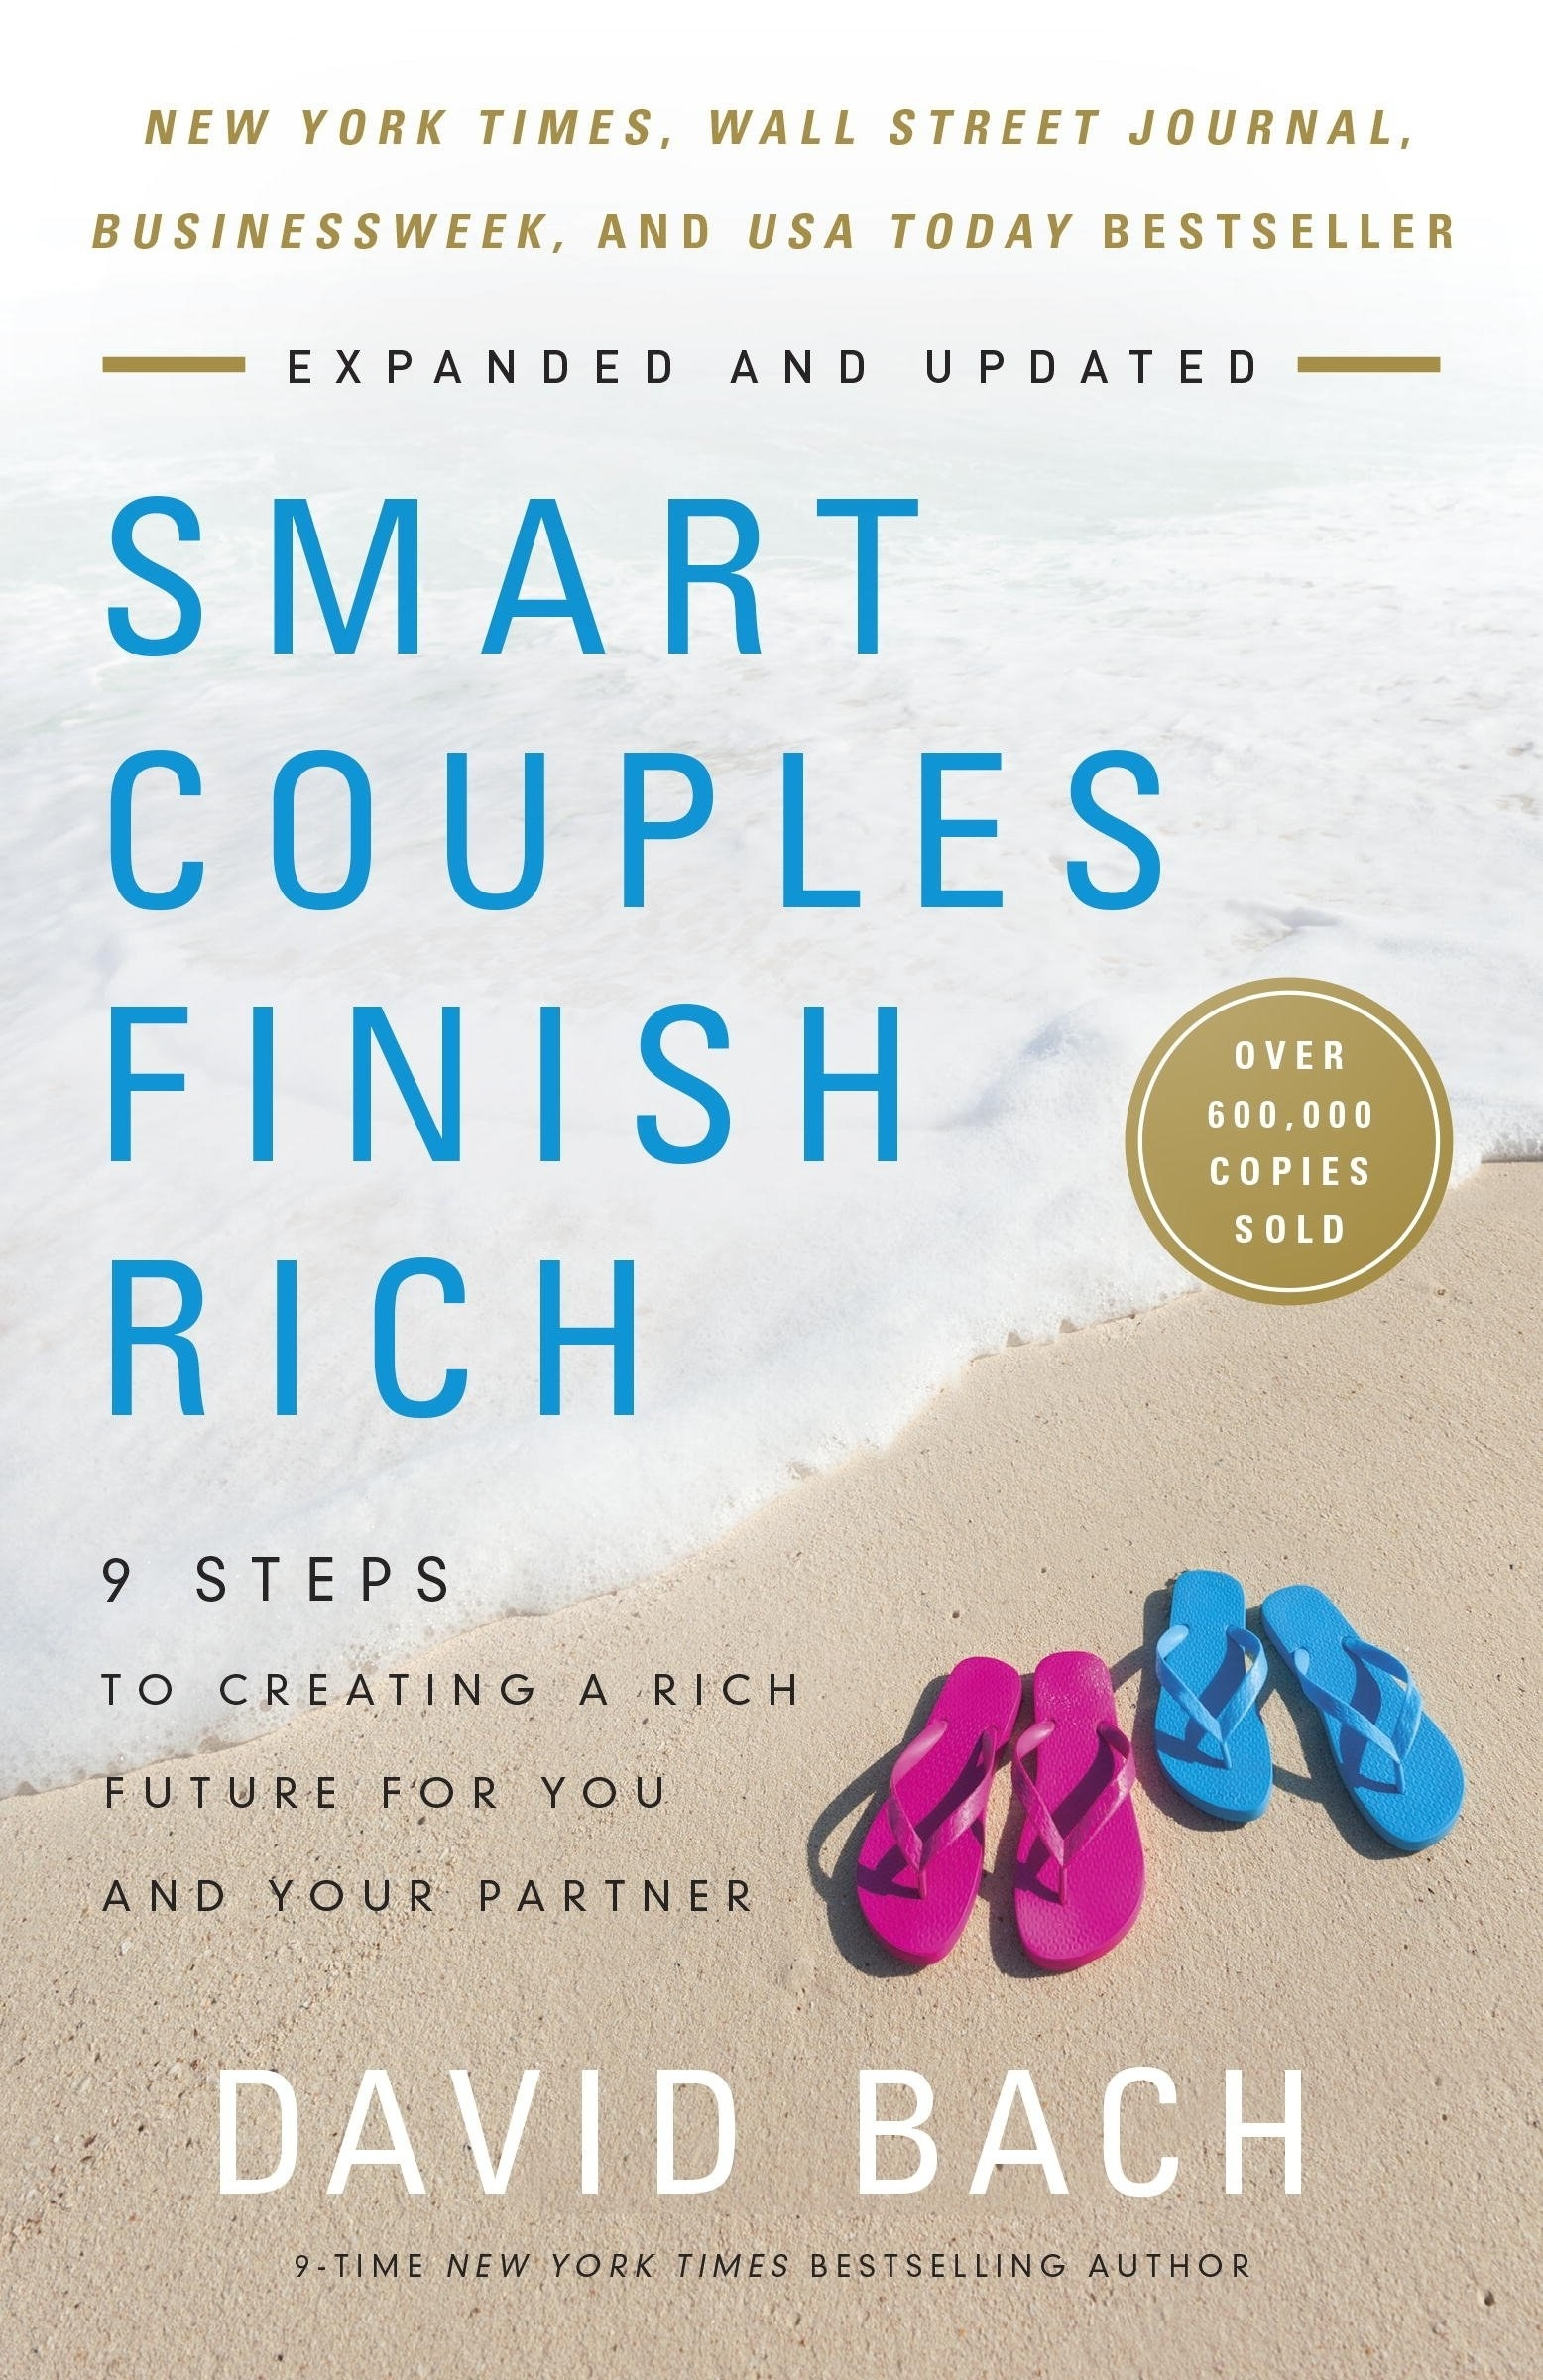 Nine steps to creating a rich future for you and your partner